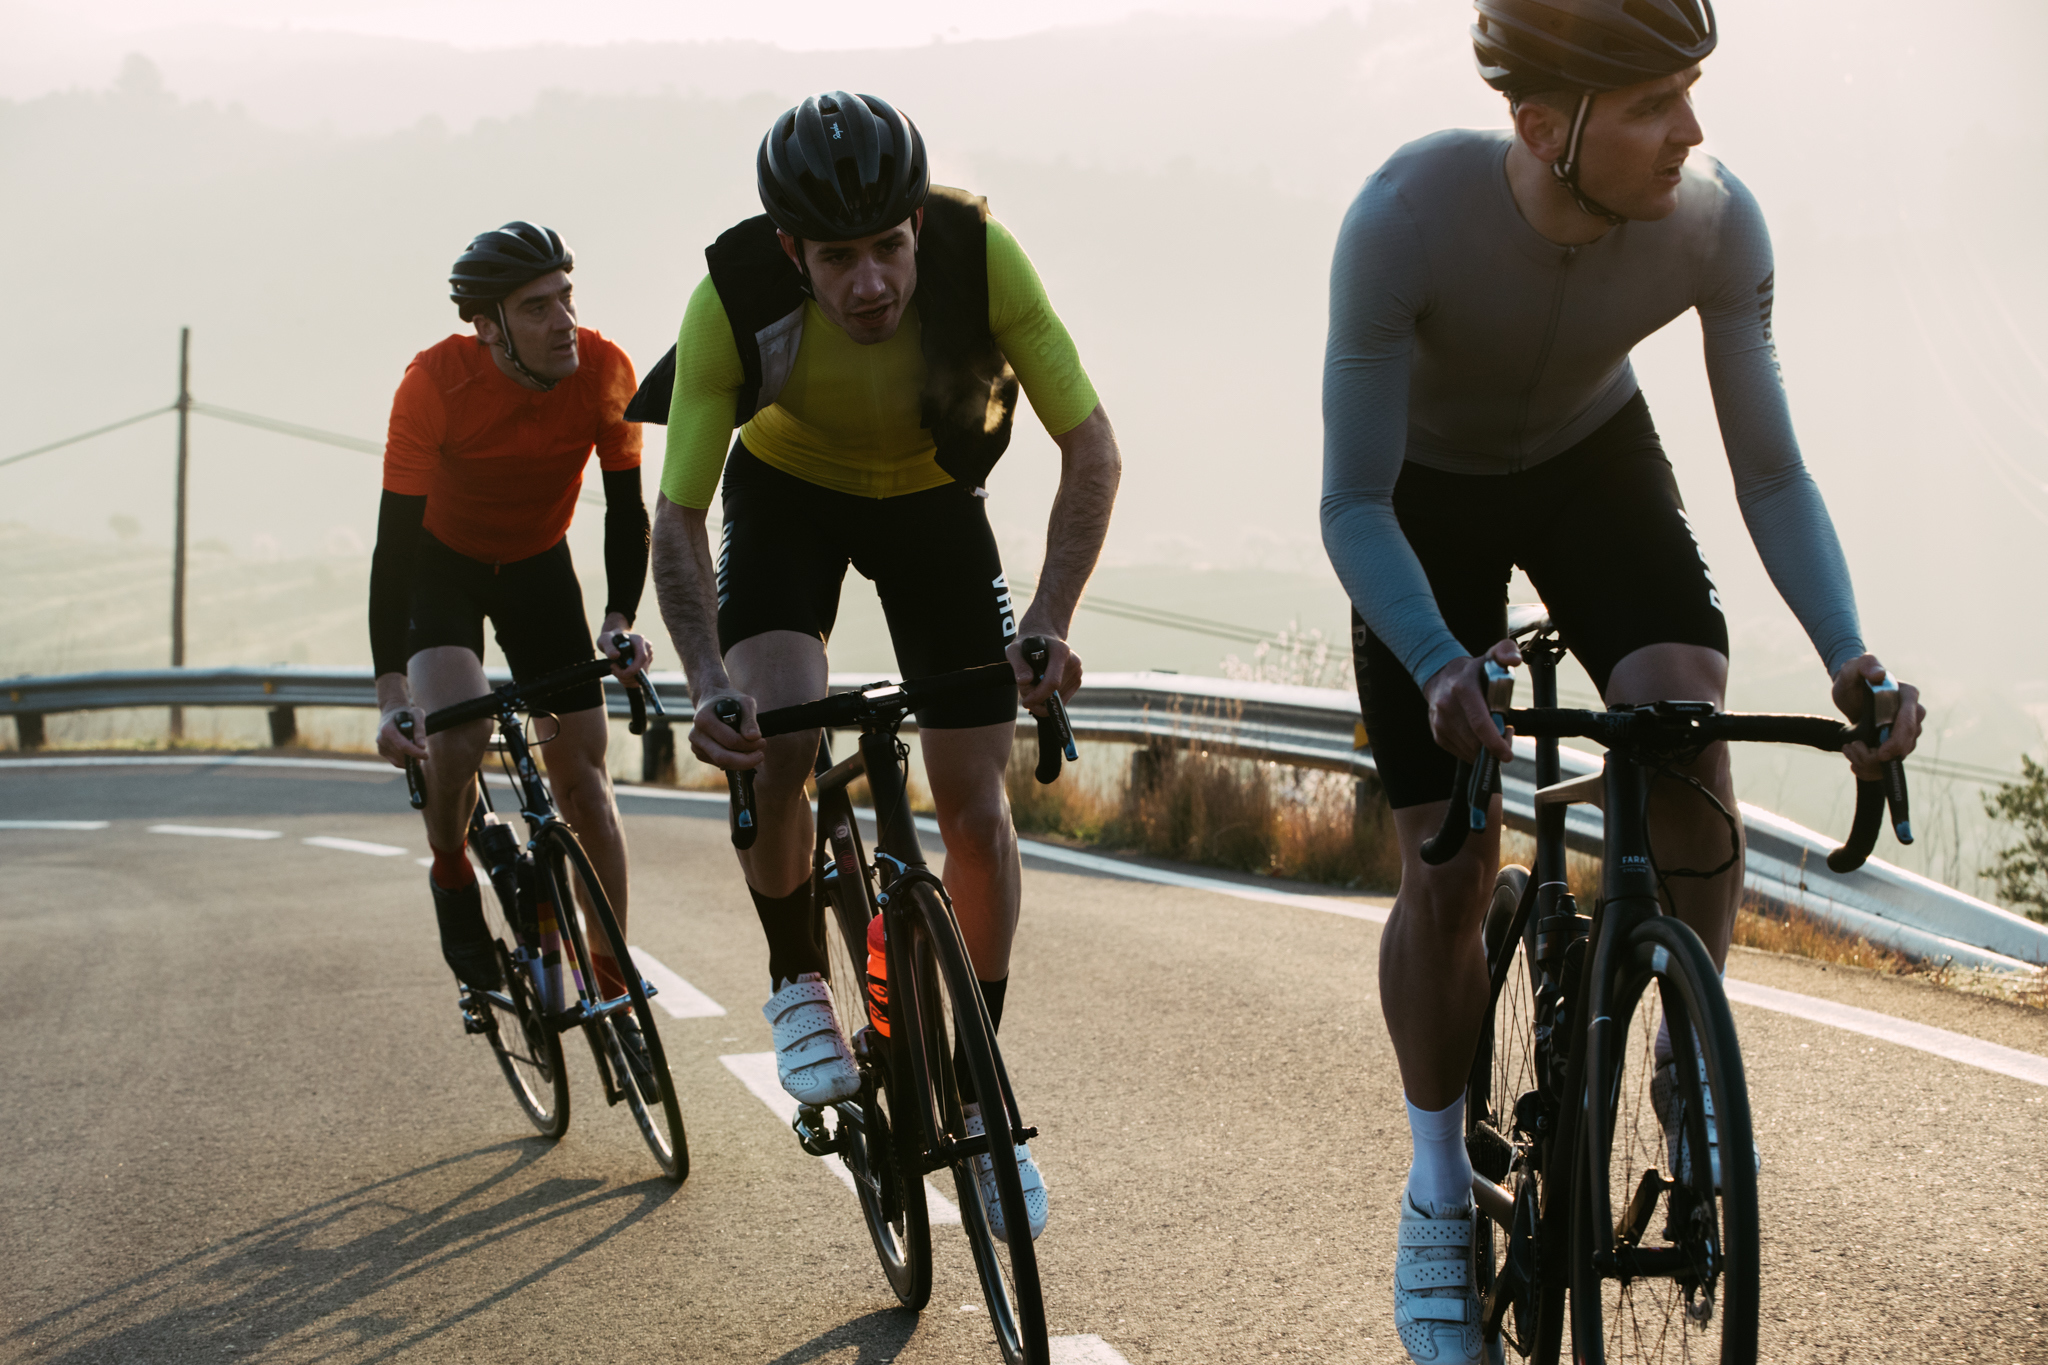 cycle clothing market Synopsis in this report, the global cycling clothing market is valued at usd xx million in 2017 and is expected to reach usd xx million by the end of 2025, growing at a cagr of xx% between 2017 and 2025.